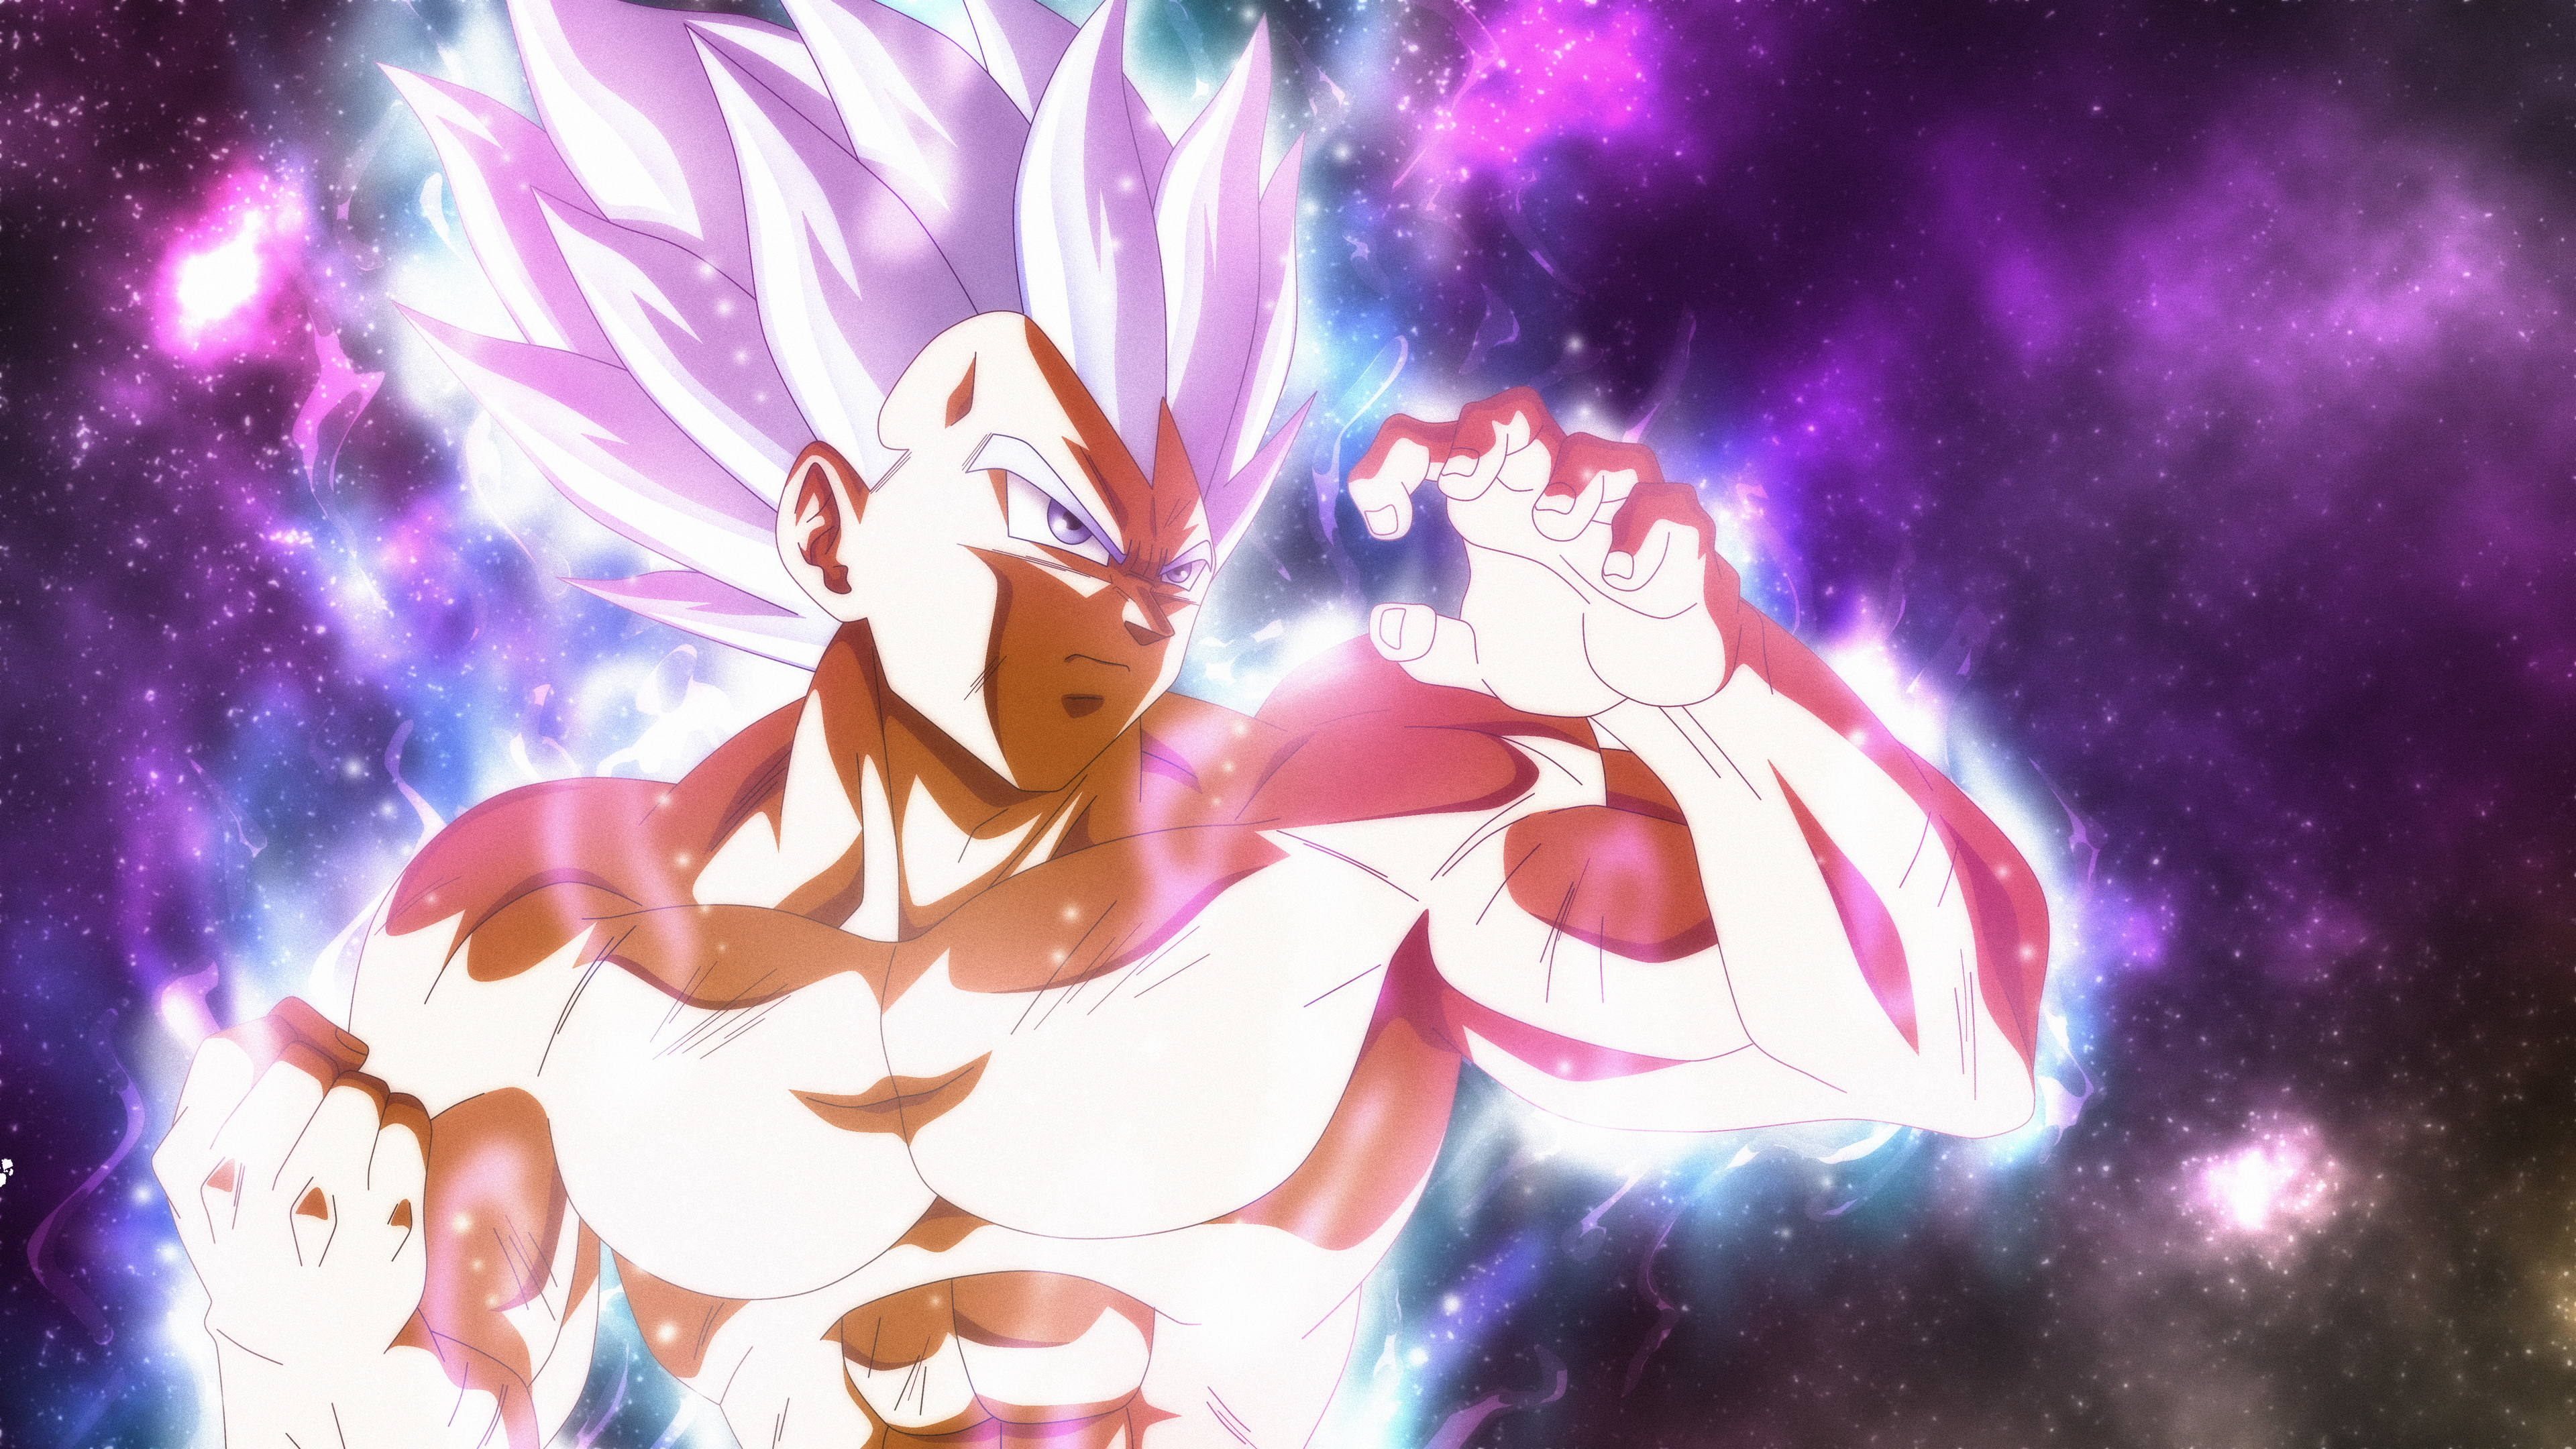 Wallpaper 4k Ultra Instinct Dragon Ball 4k Wallpapers Anime